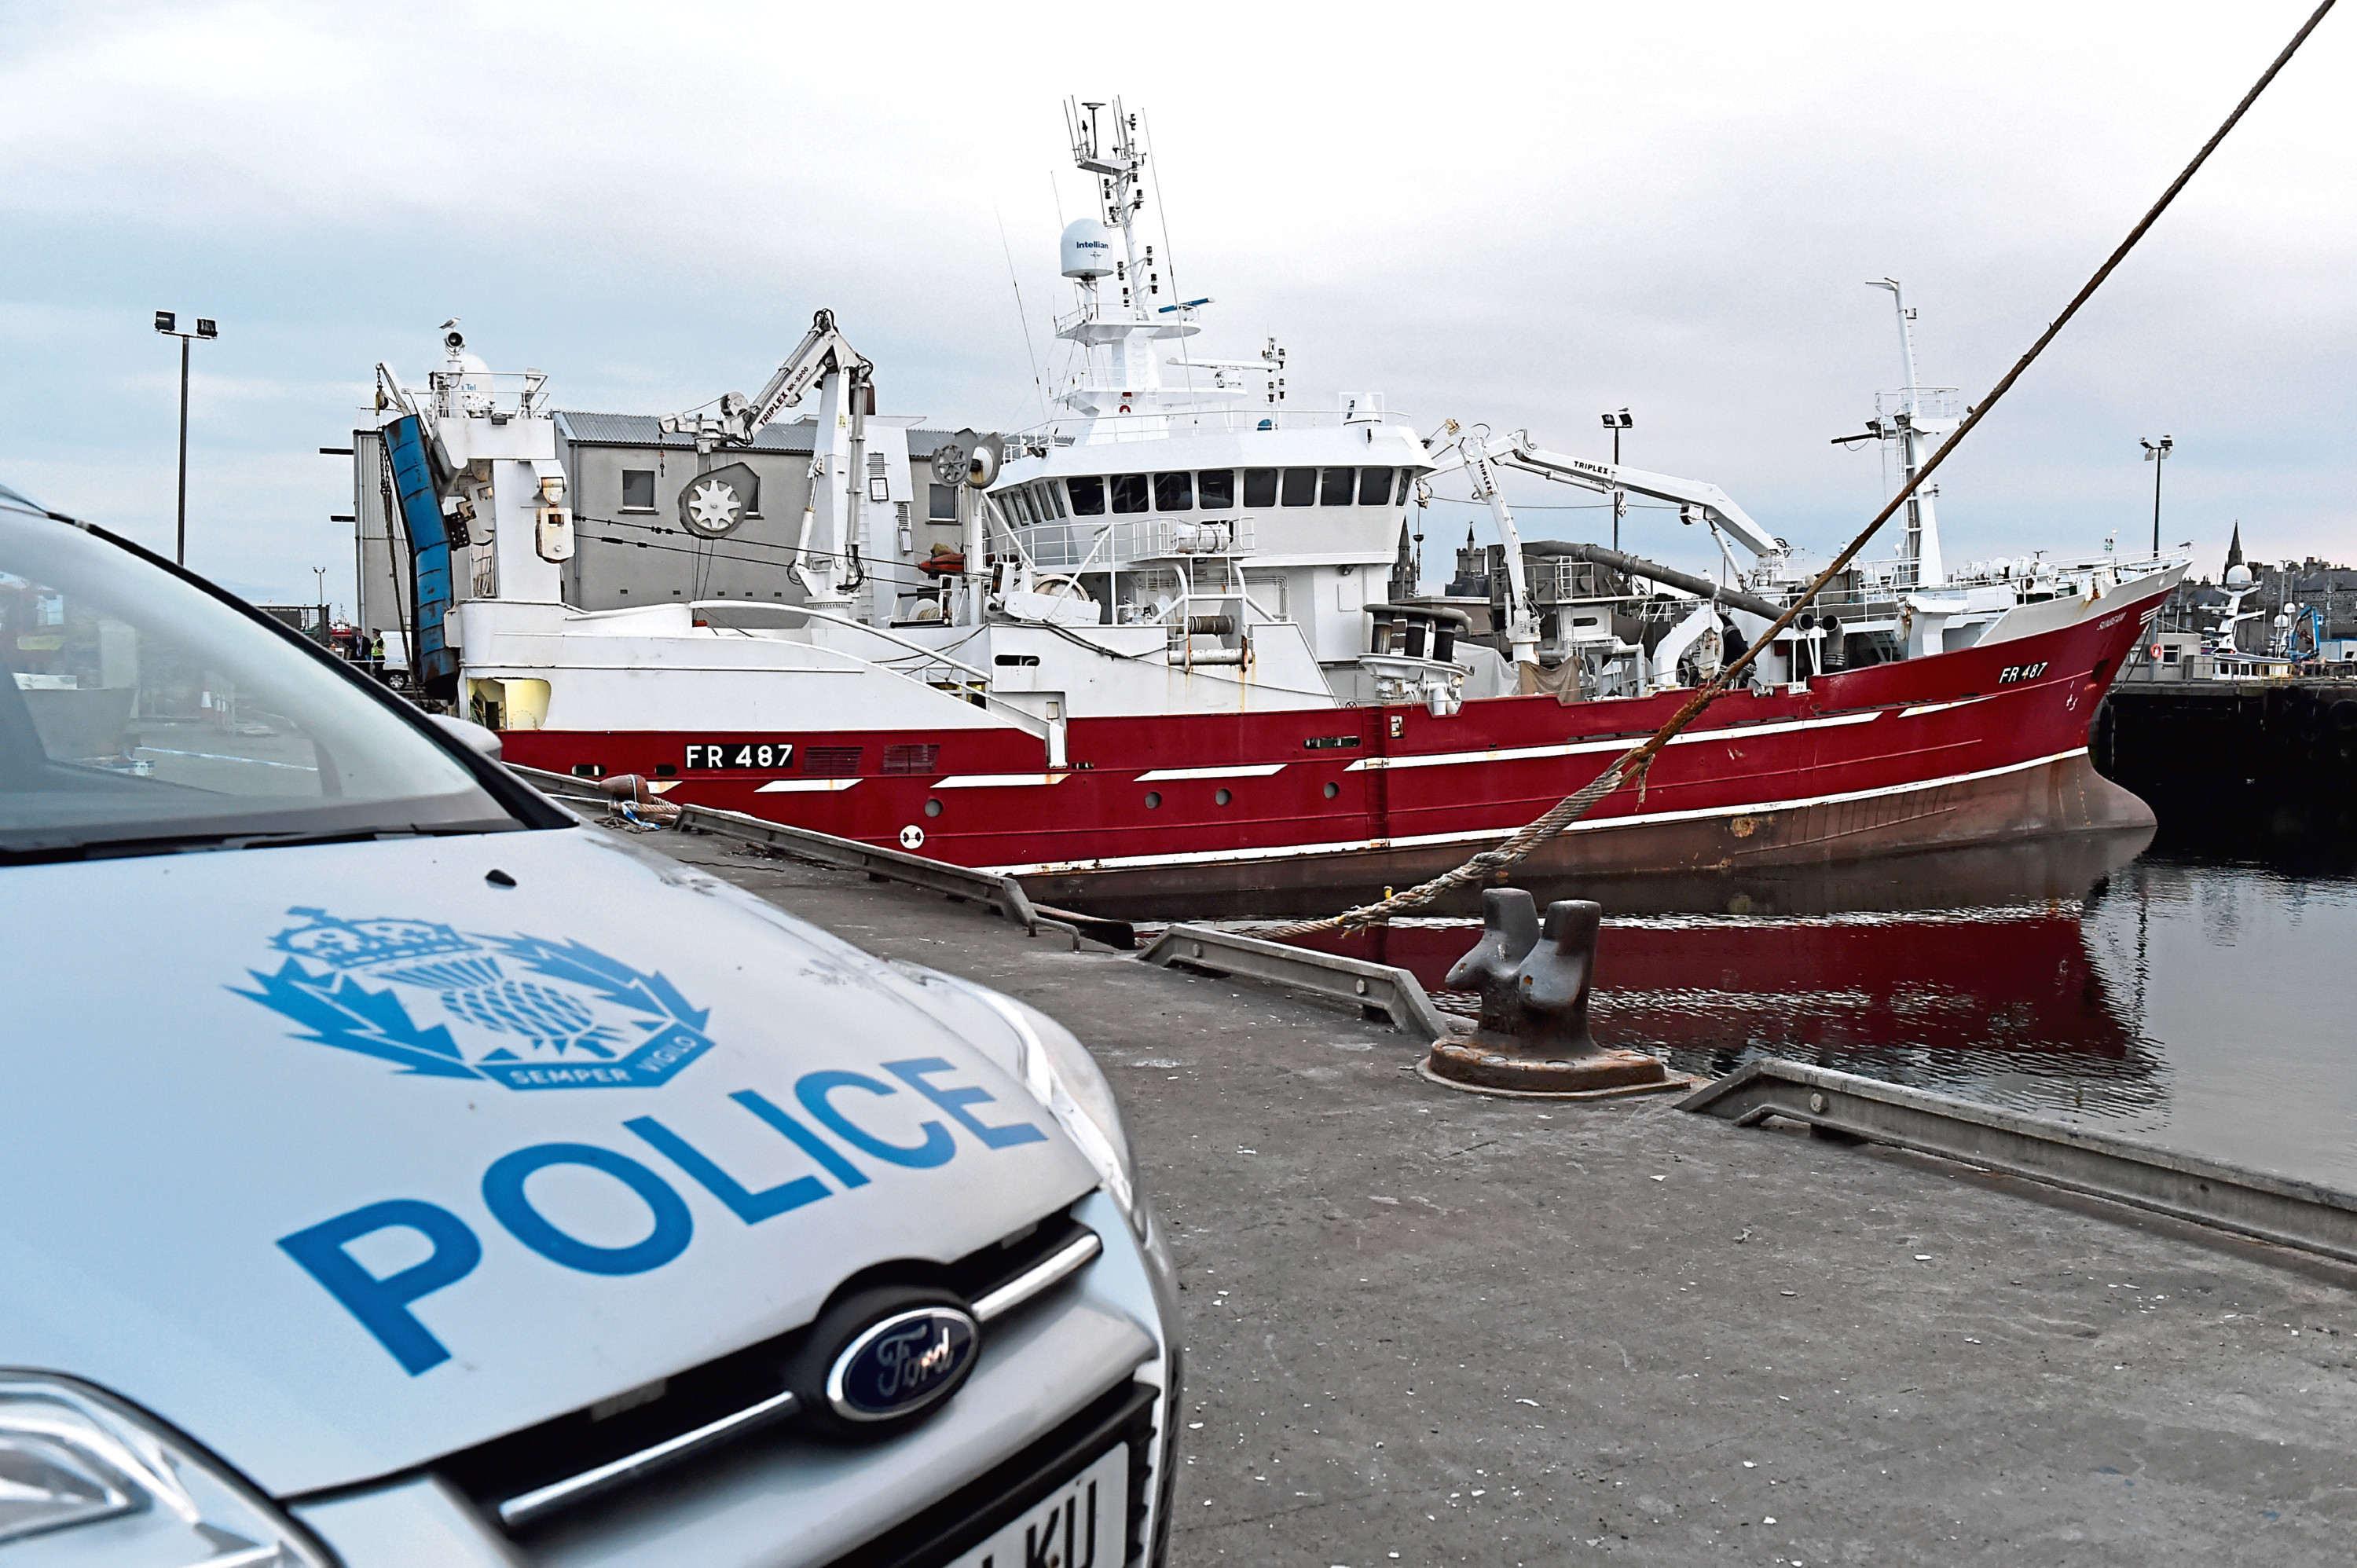 Low oxygen levels and toxic gas detected following Fraserburgh fishermen's death